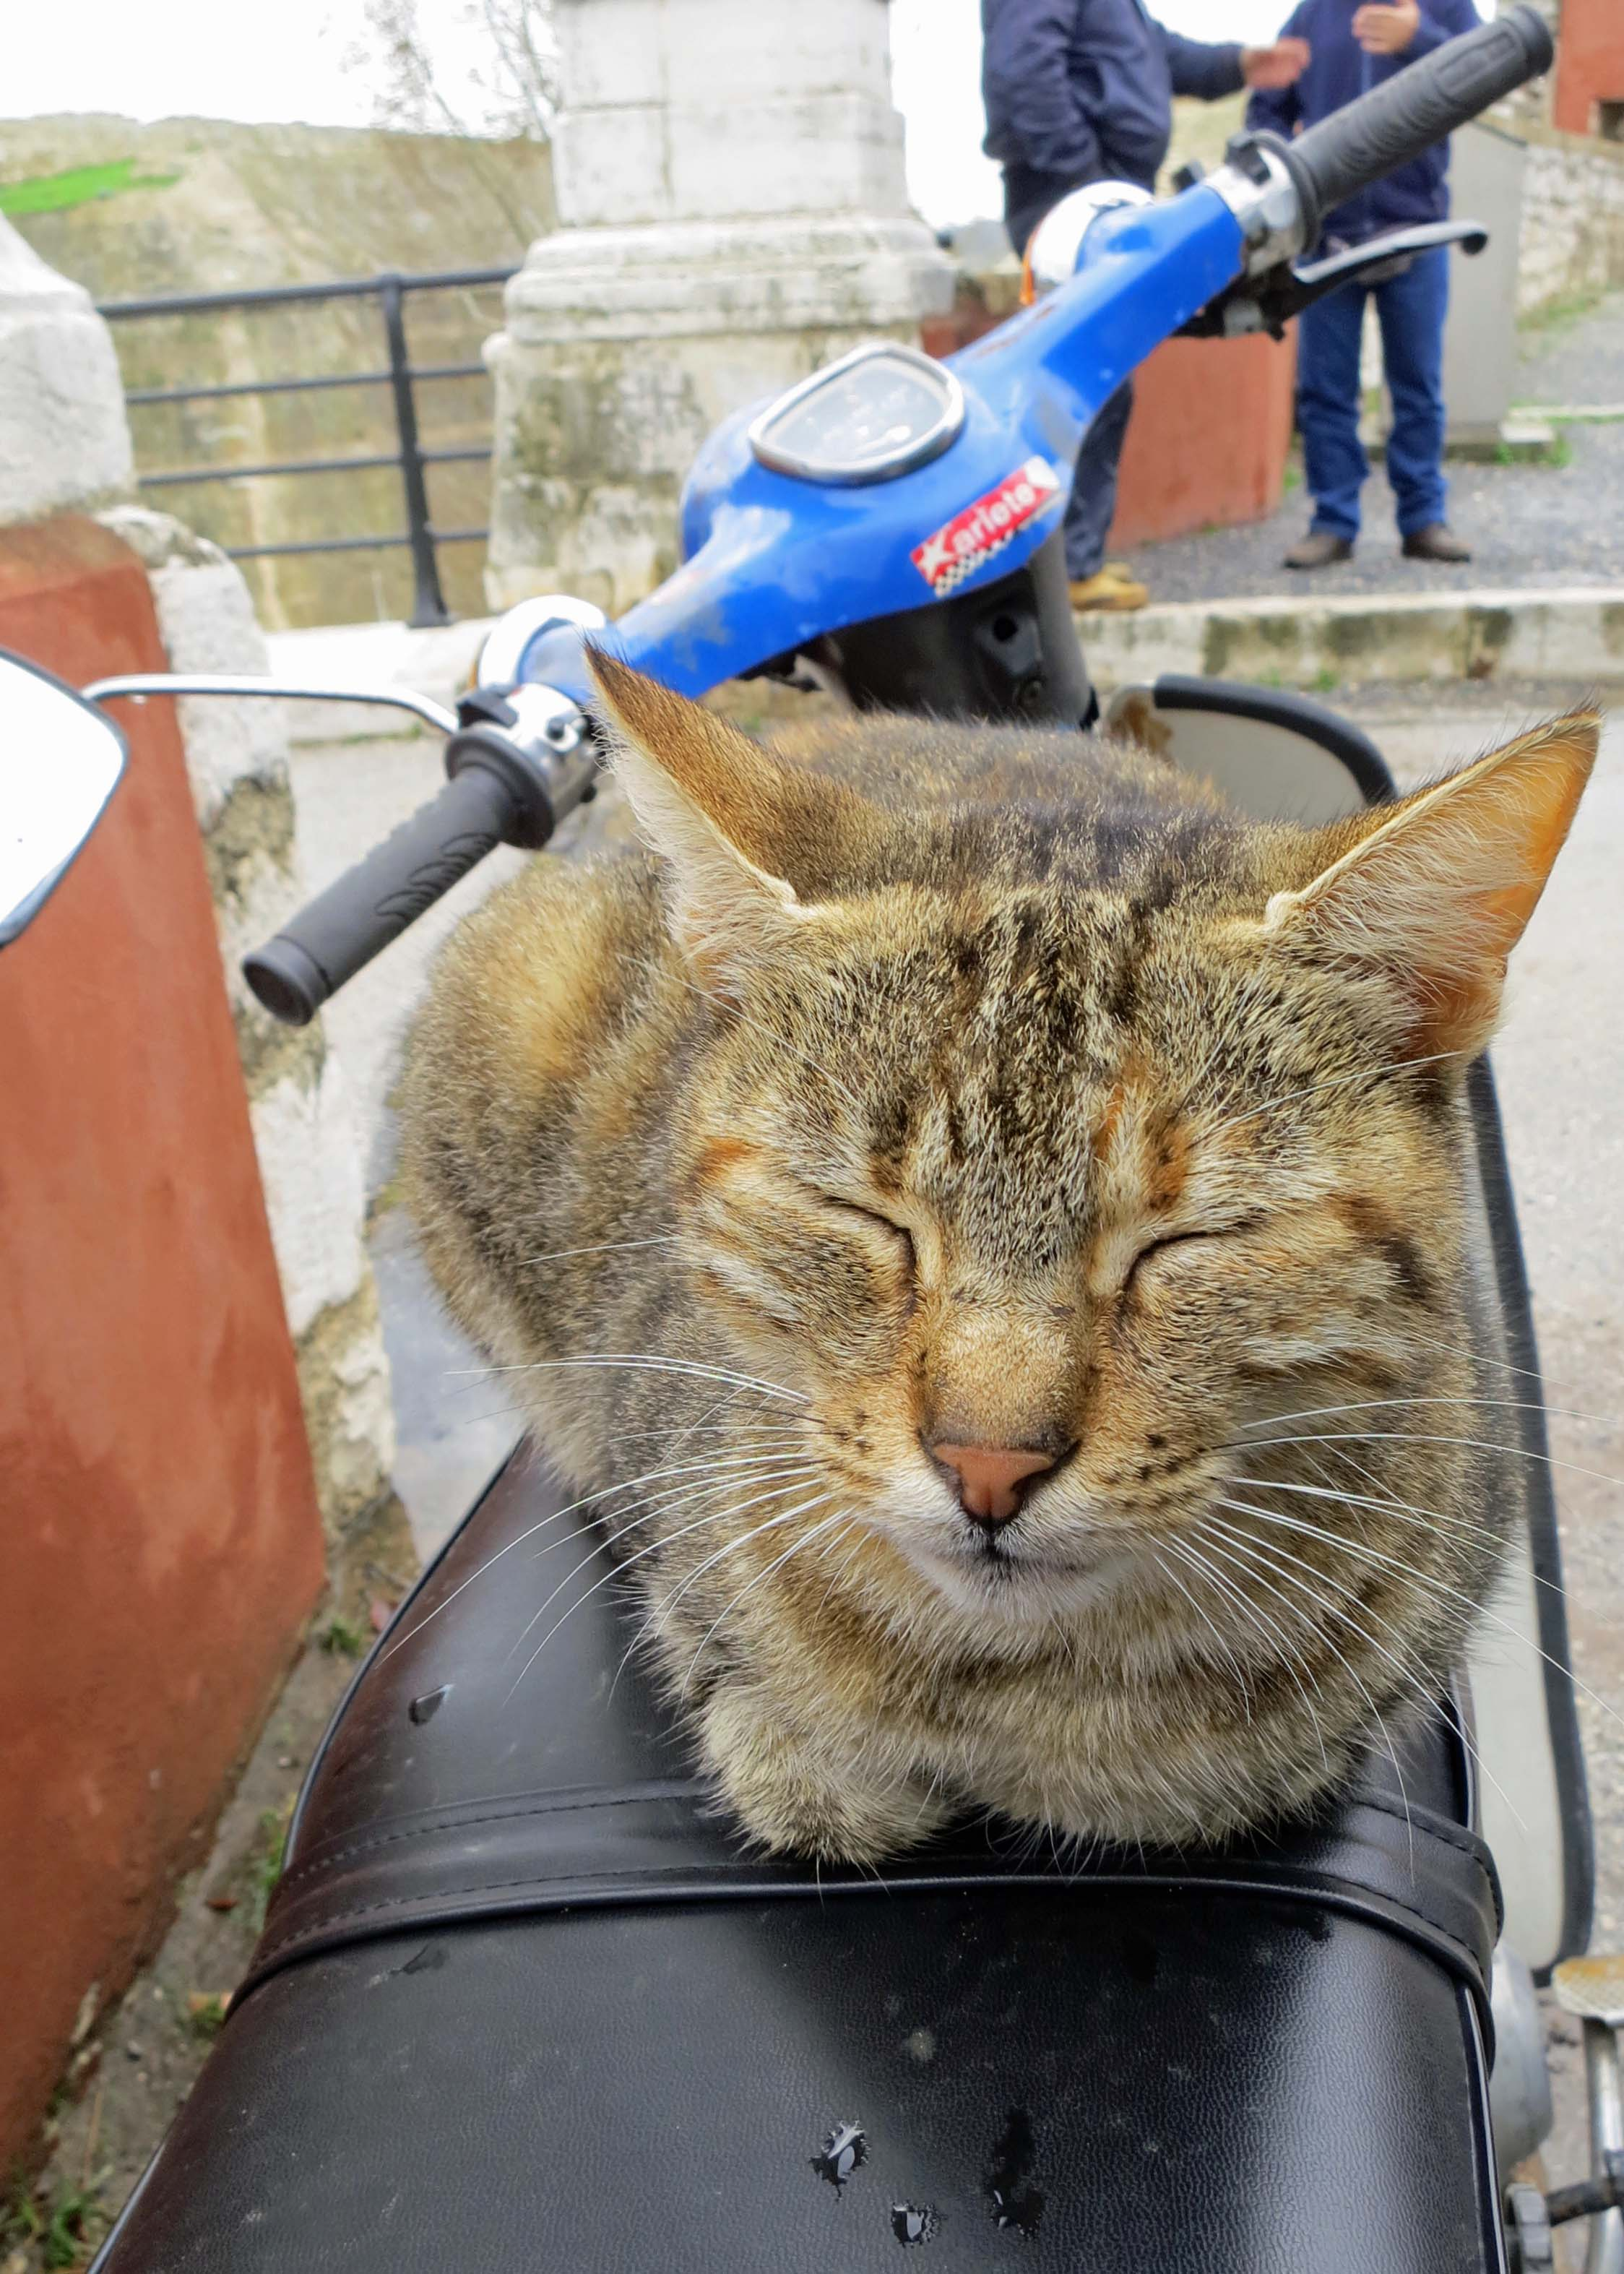 My obligatory cat photo. I caught this guy sleeping on the seat of a motor bike at the entrance to the Old Fort on Corfu. It may be a new definition of contentment.